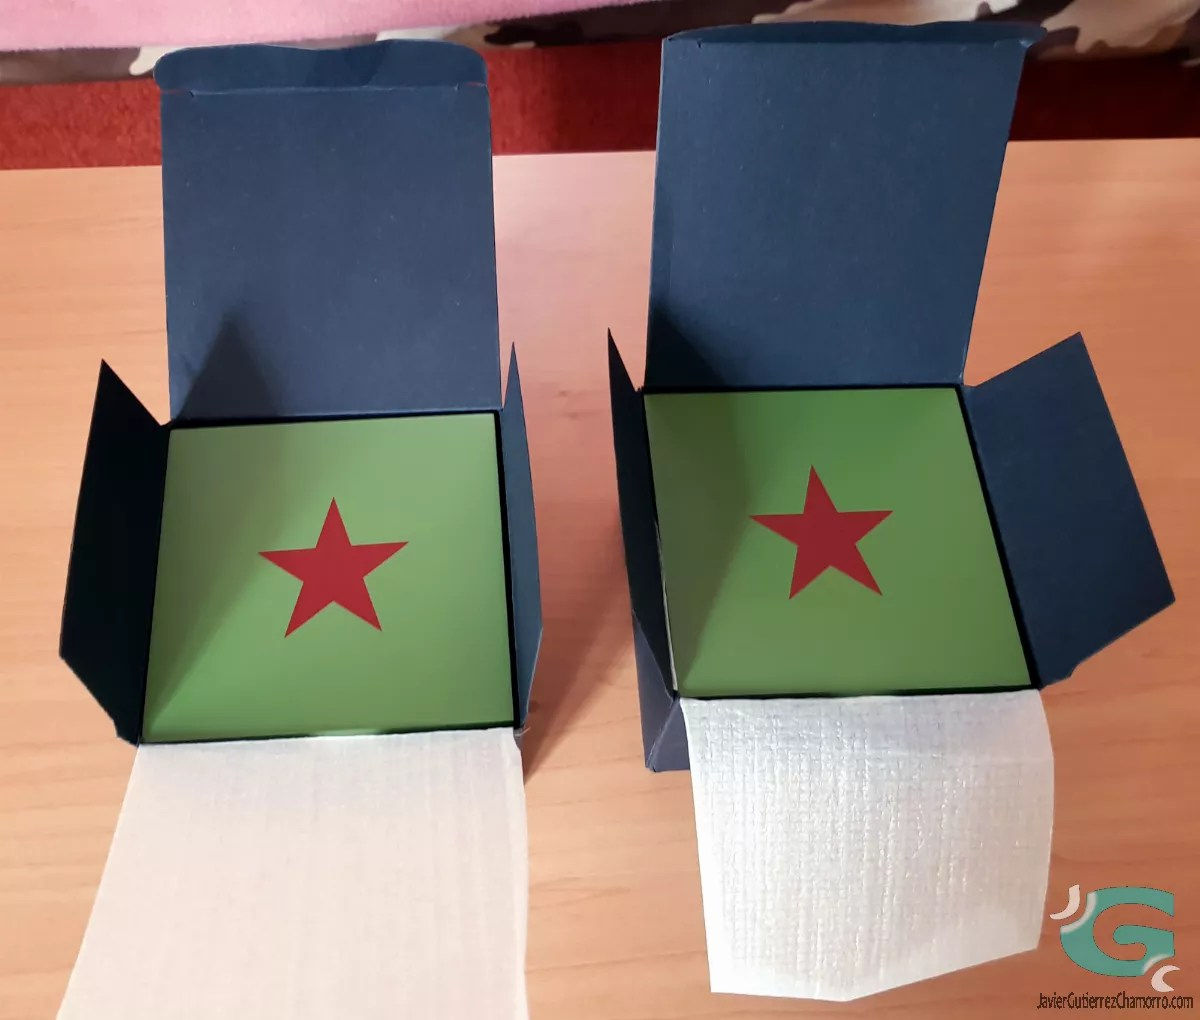 Red Star Luch Solo